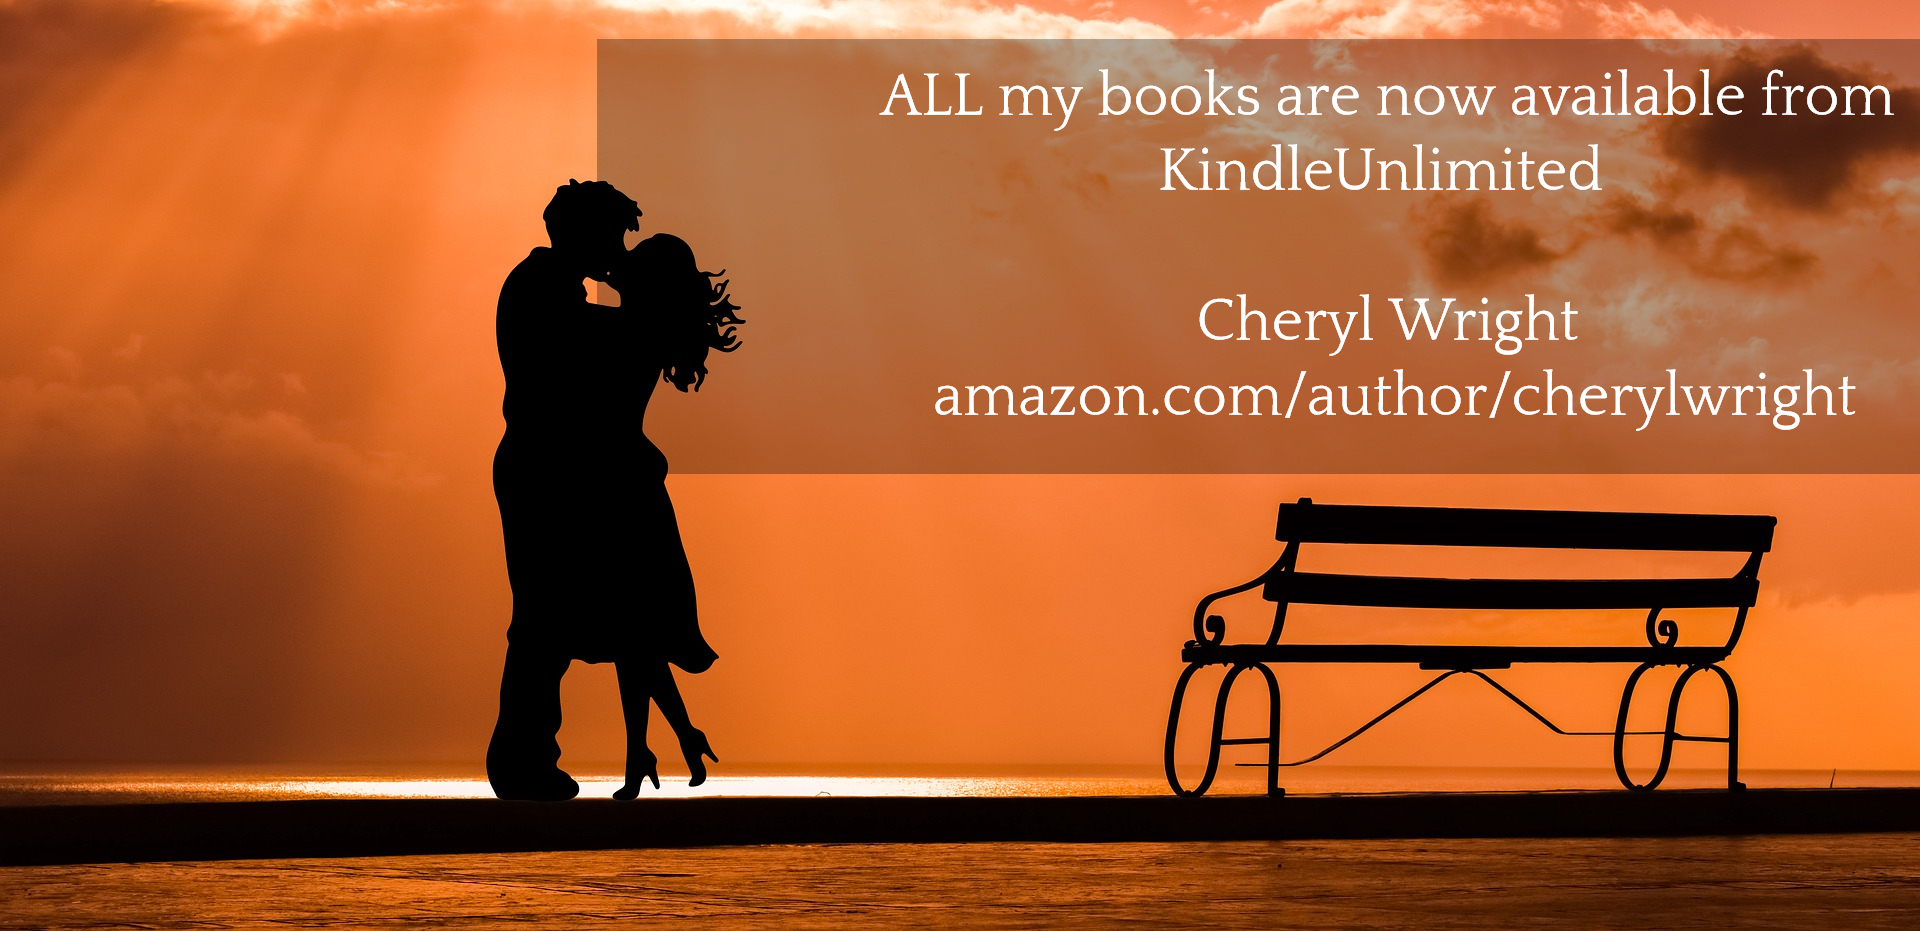 all my books are now available from kindleunlimited cheryl wright amazon...